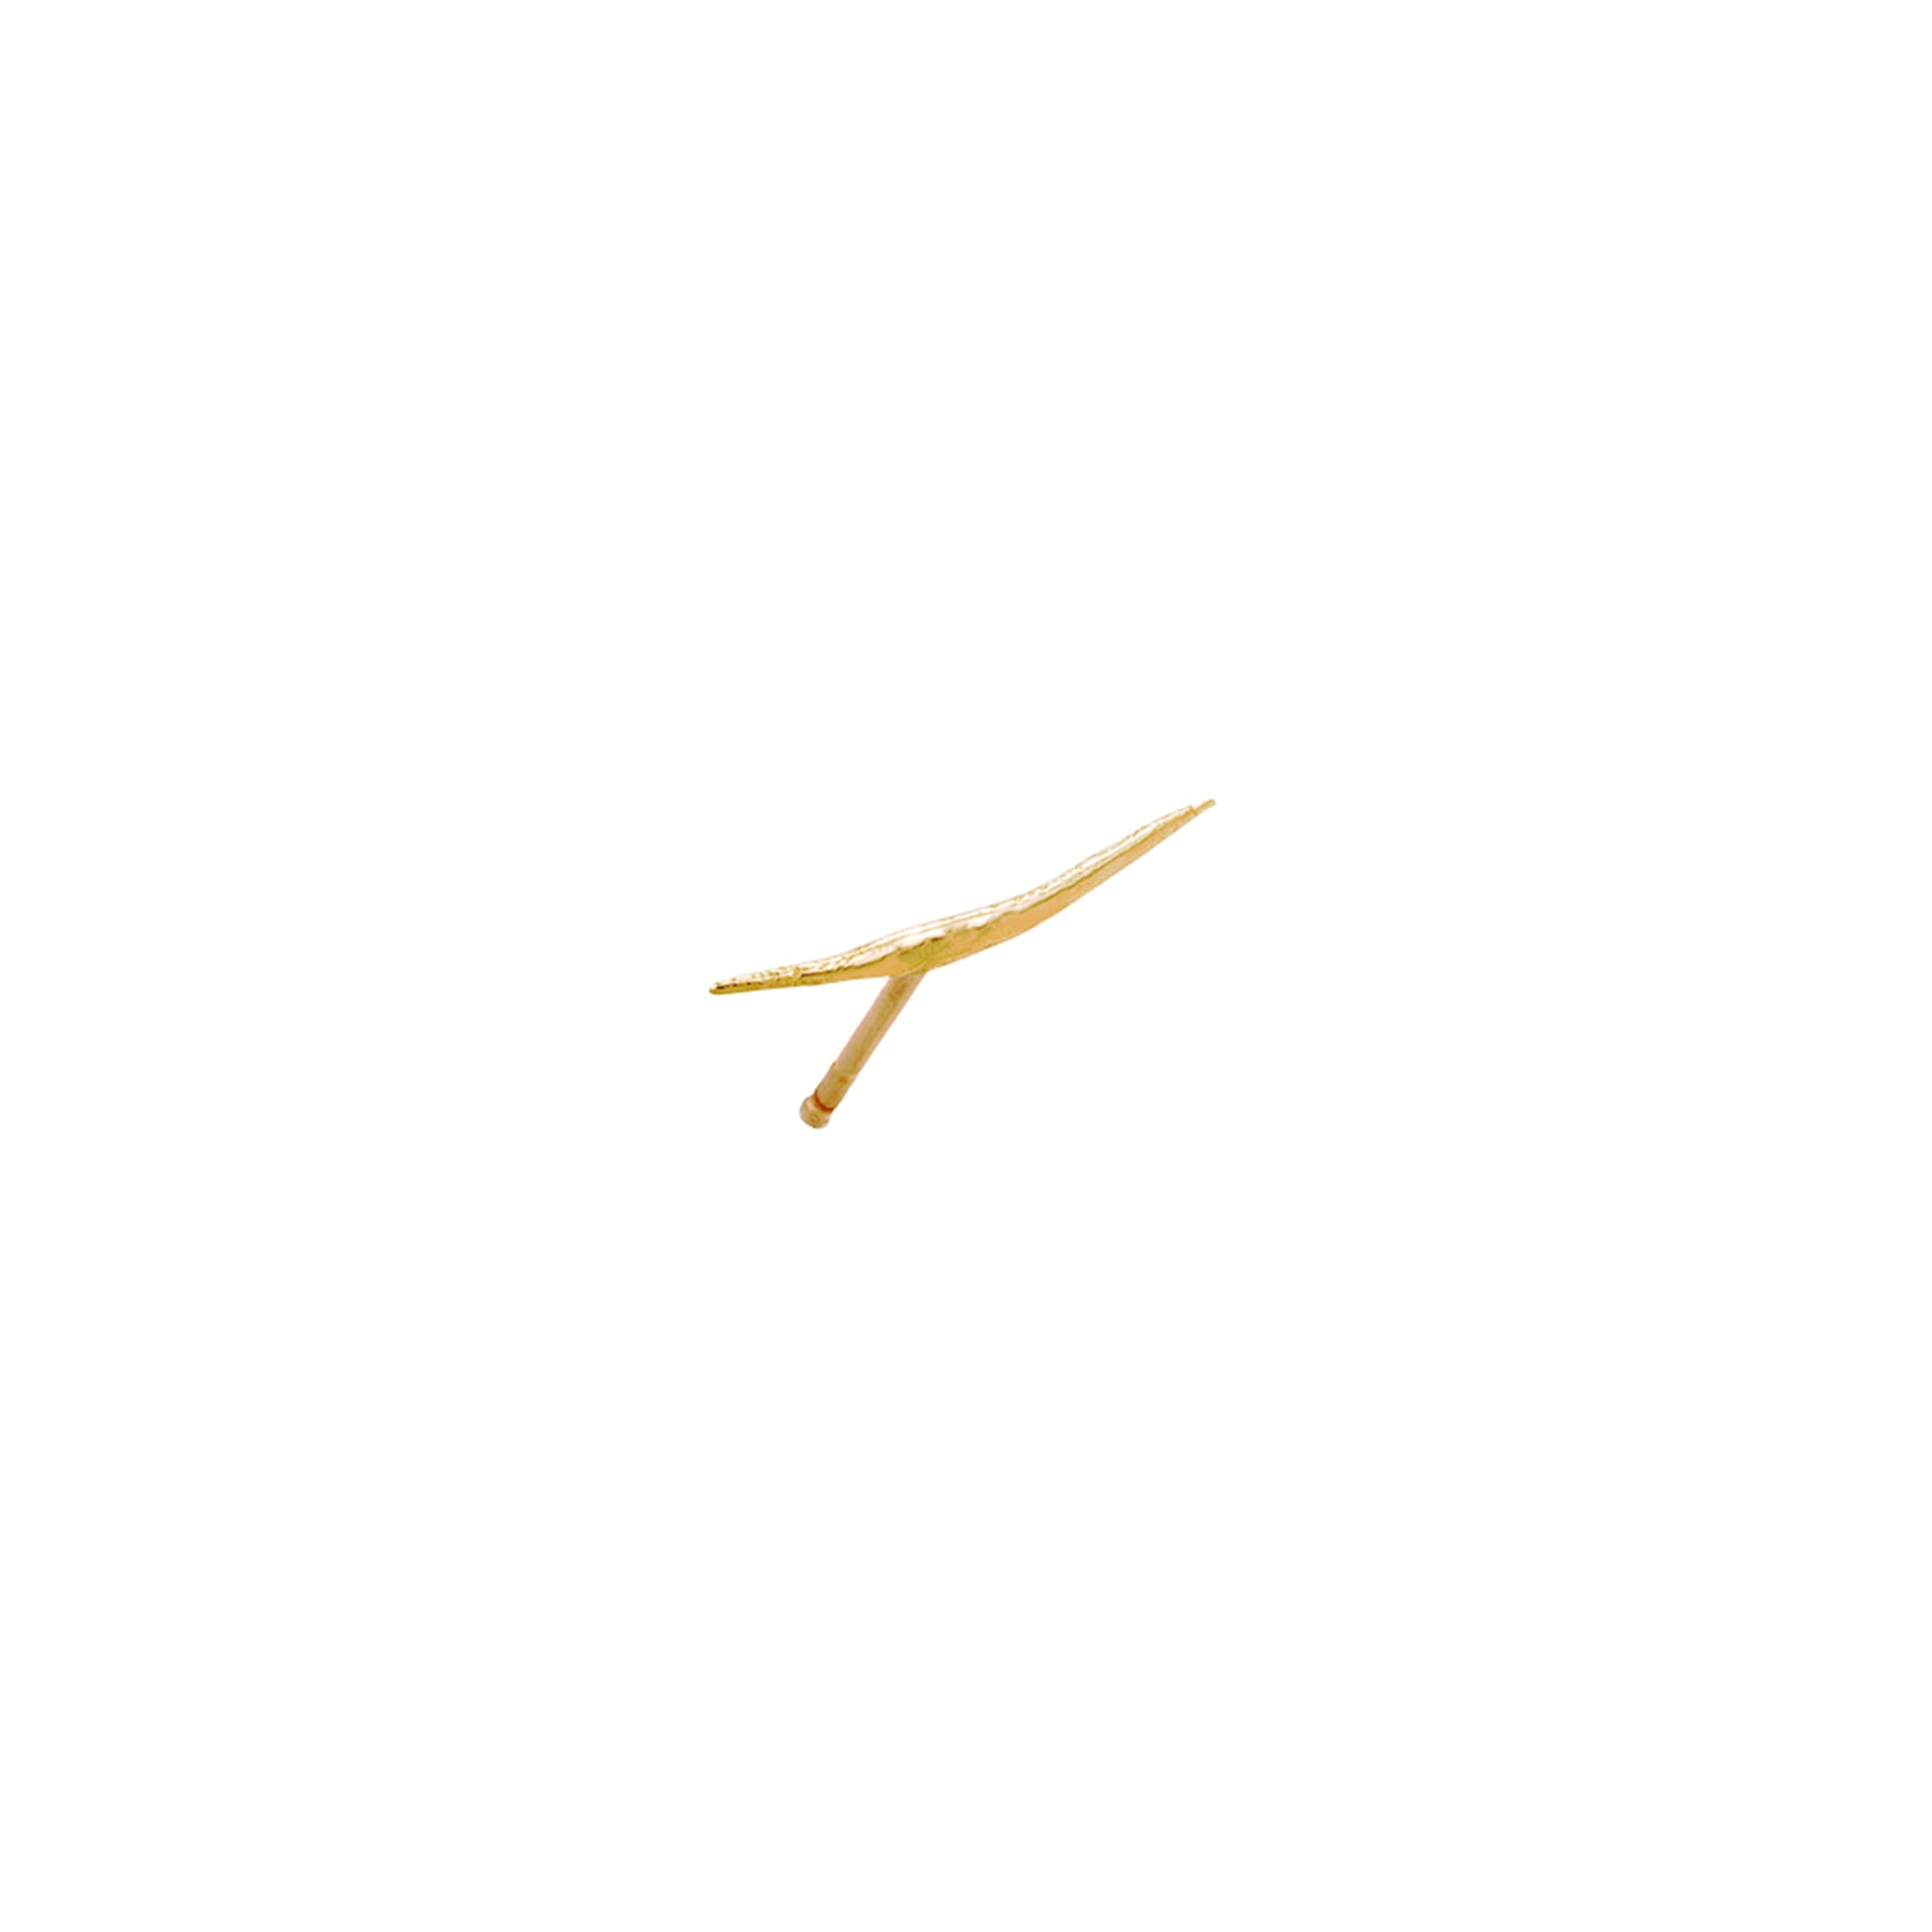 gold Stick Wisp Stud by Wwake for Broken English Jewelry